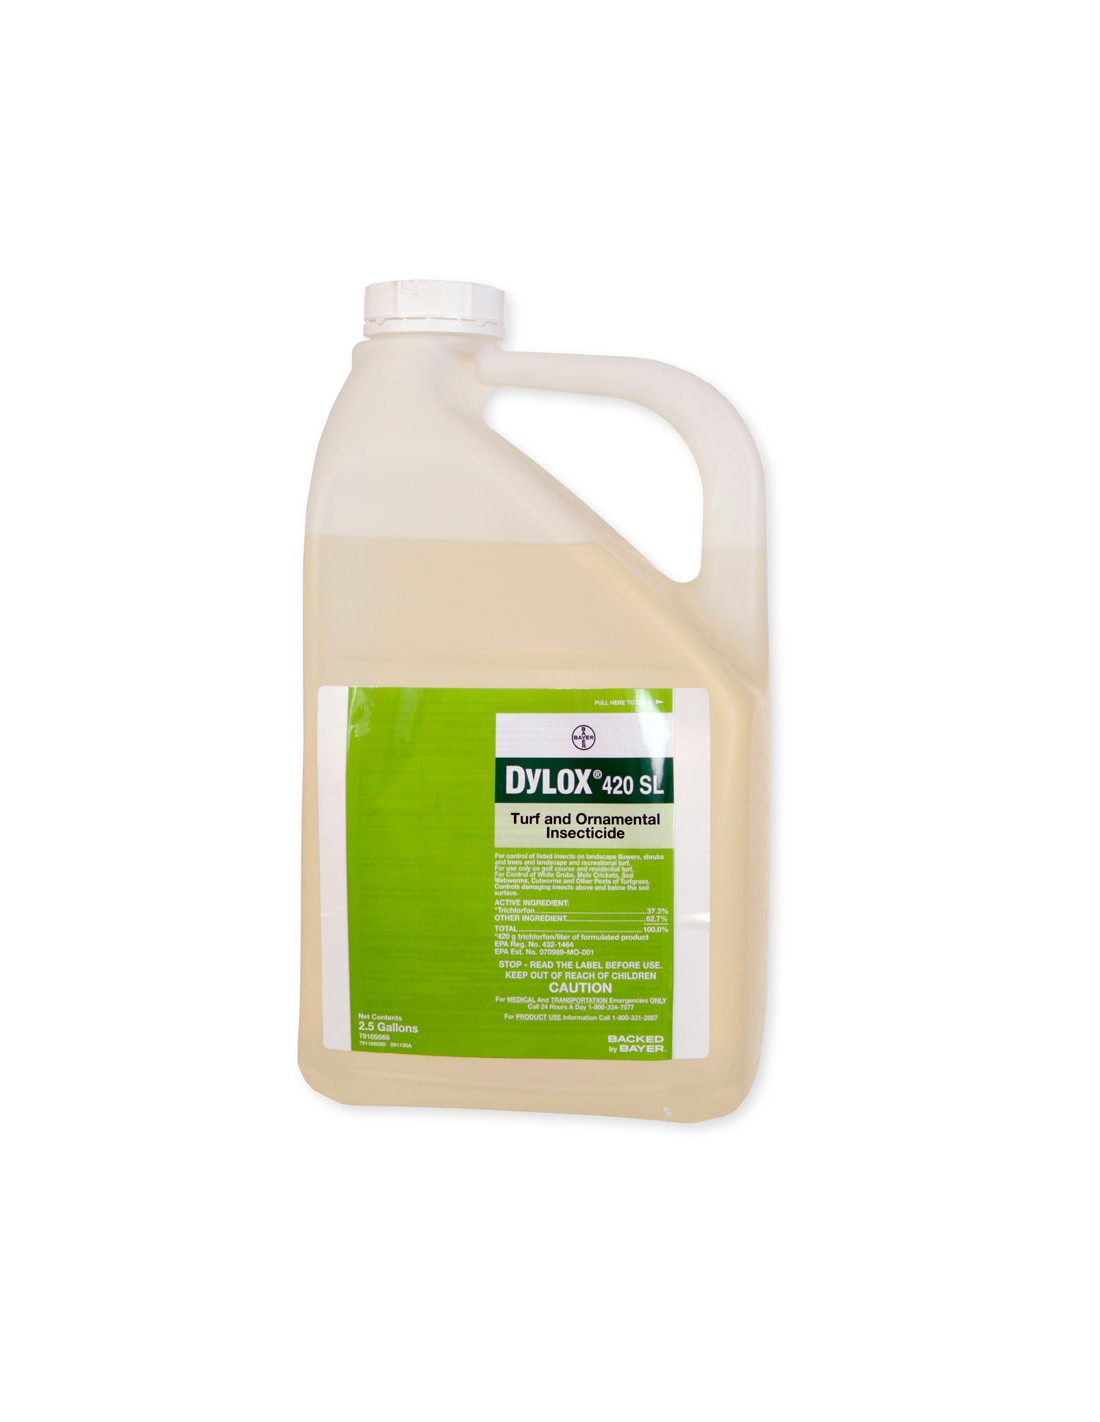 Dylox 420 SL Turf and Ornamental Insecticide Questions & Answers